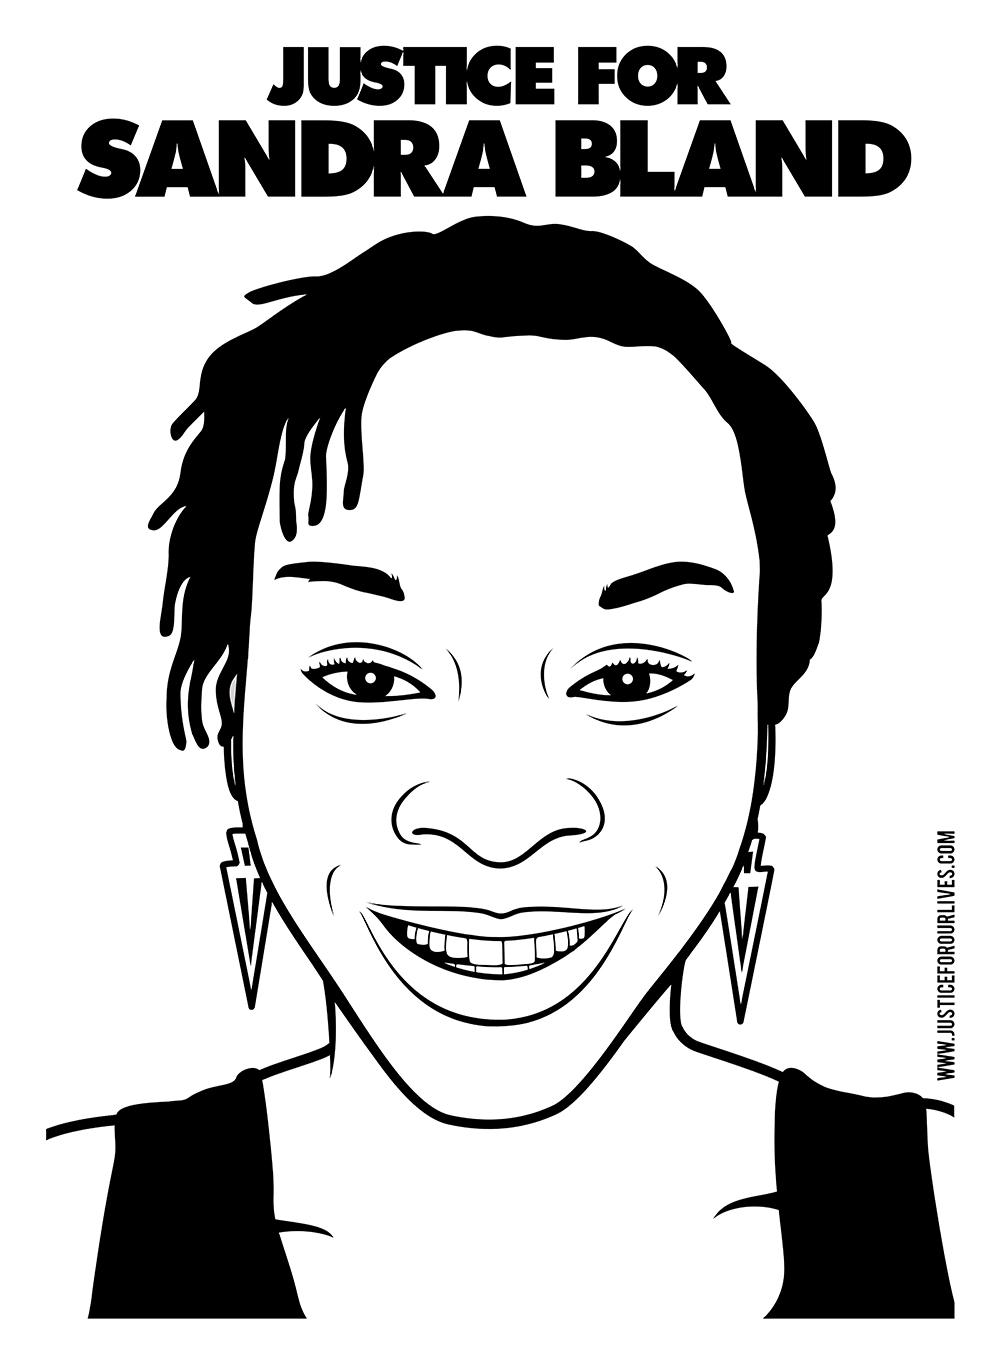 Justice For Sandra Bland Digital Design 2015 Sandra Bland was found dead in her jail cell after being taking in for a routine traffic stop. Her friends and family claim she was not suicidal.